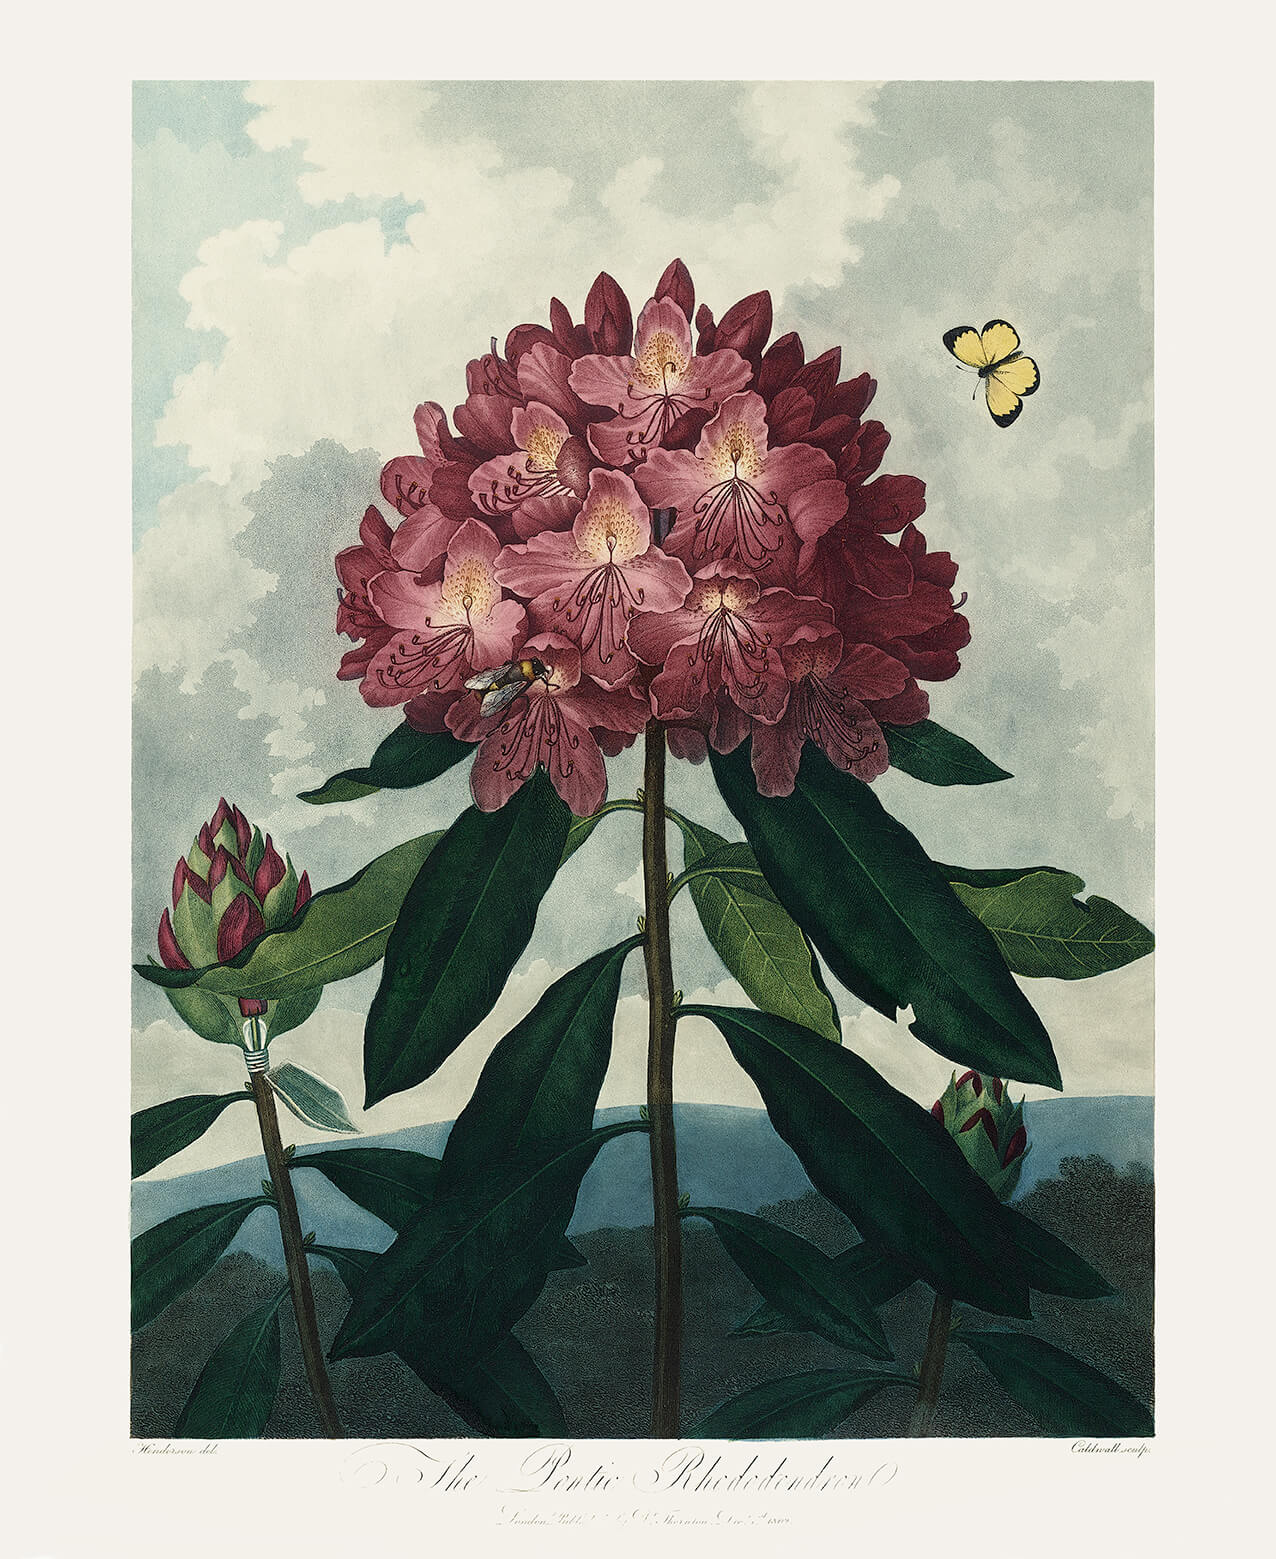 Pontic Rhododendron by Robert Thornton – Temple of Flora, or Garden of Nature – Museum Quality Giclee Print – Heritage Prints Facsimile